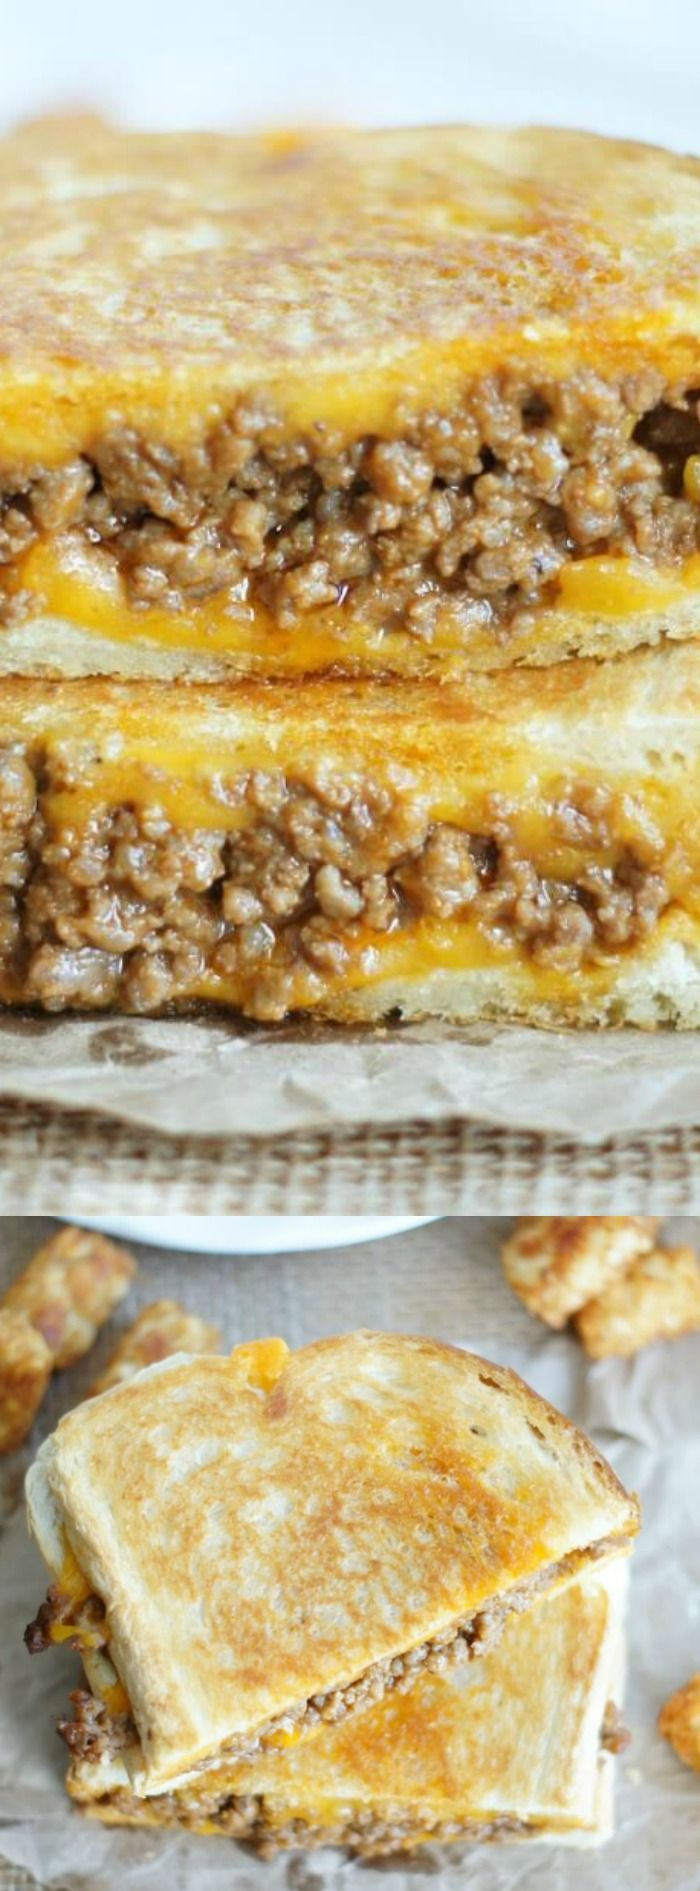 These Sloppy Joe Grilled Cheese Sandwiches from 5 Boys Baker are bound to become your new quick and easy weeknight go-to meal when